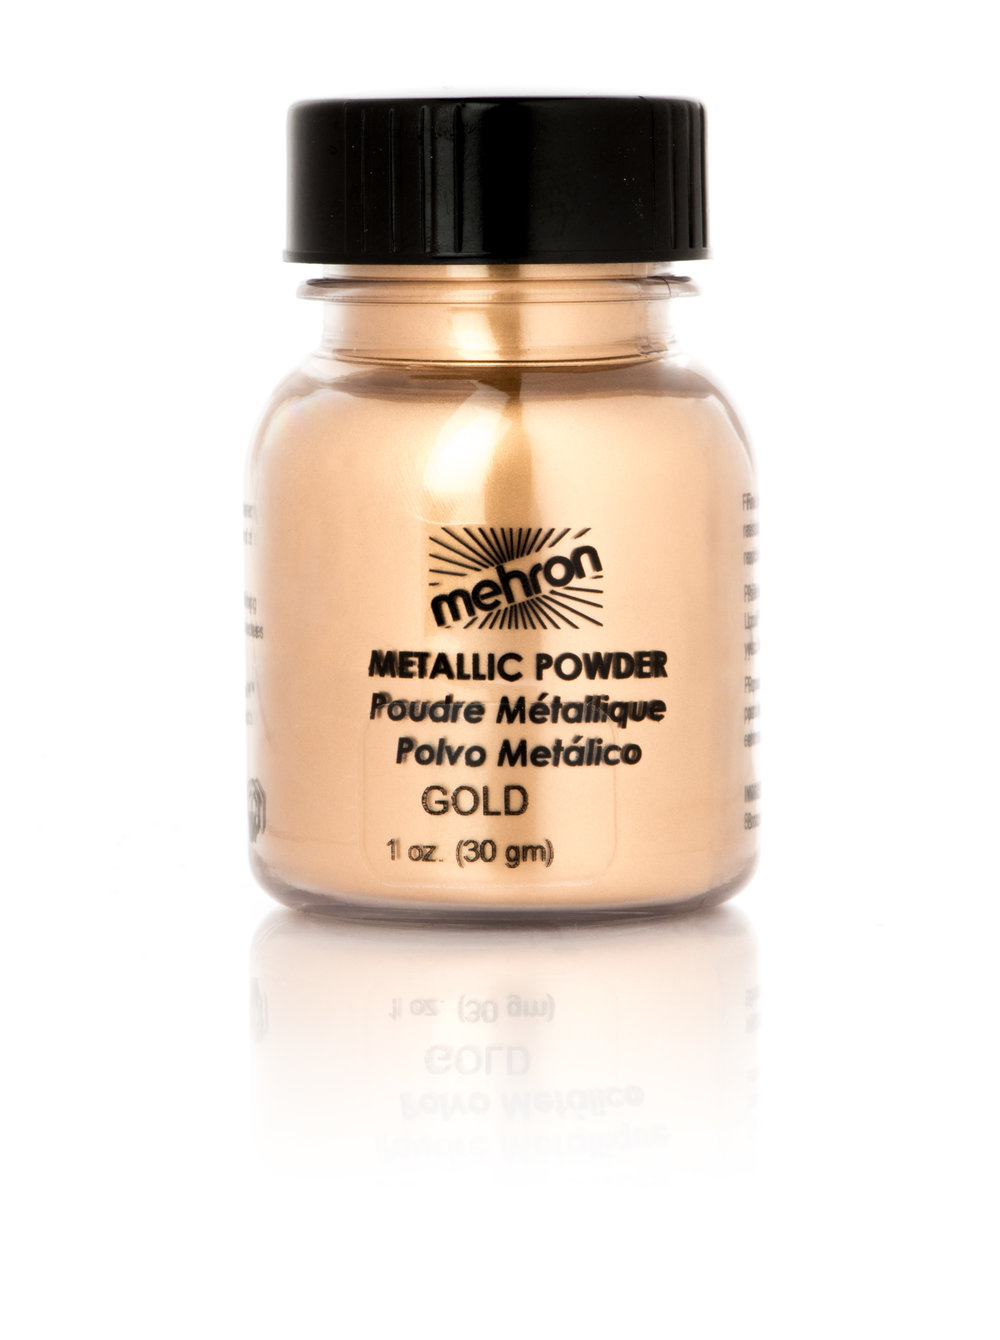 10. Mehron Makeup Metallic Powder in Gold $10.95 from www.mehron.com